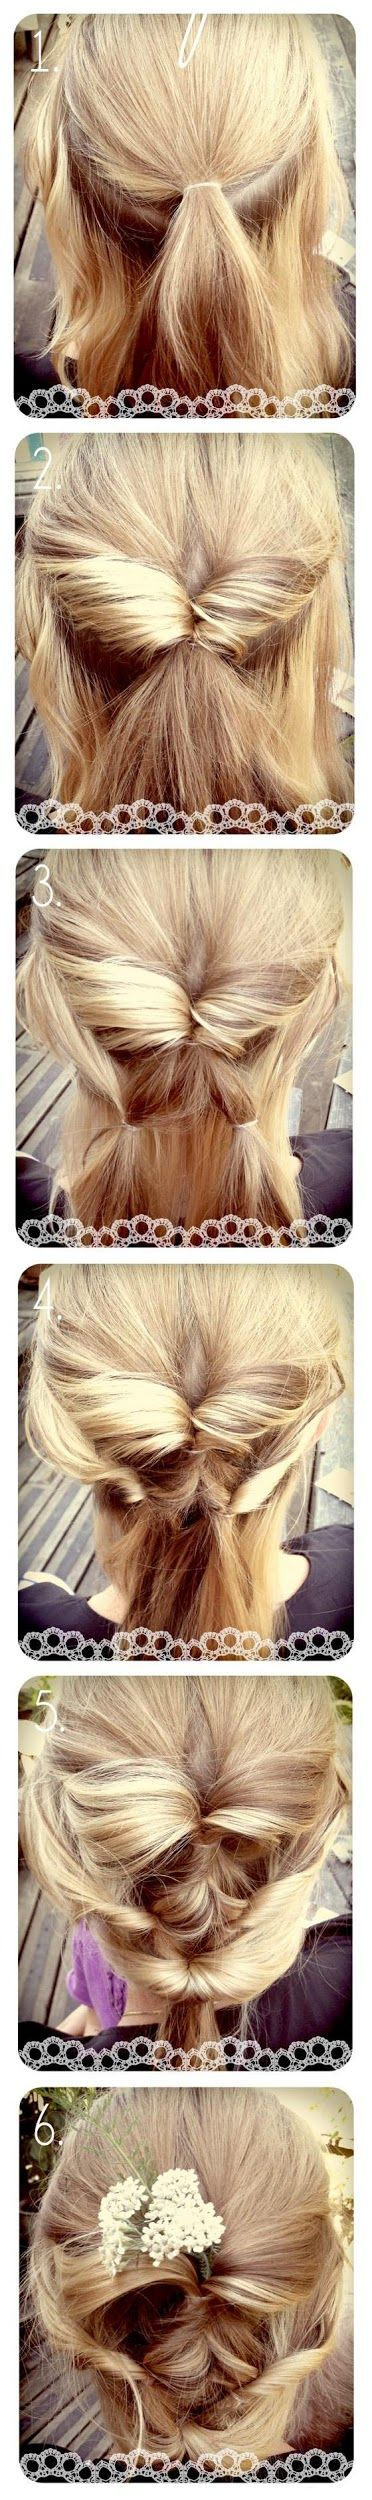 Make a Diy Wedding Hair (or in my case special occasion hair since I'm not planning on getting married anytime soon)